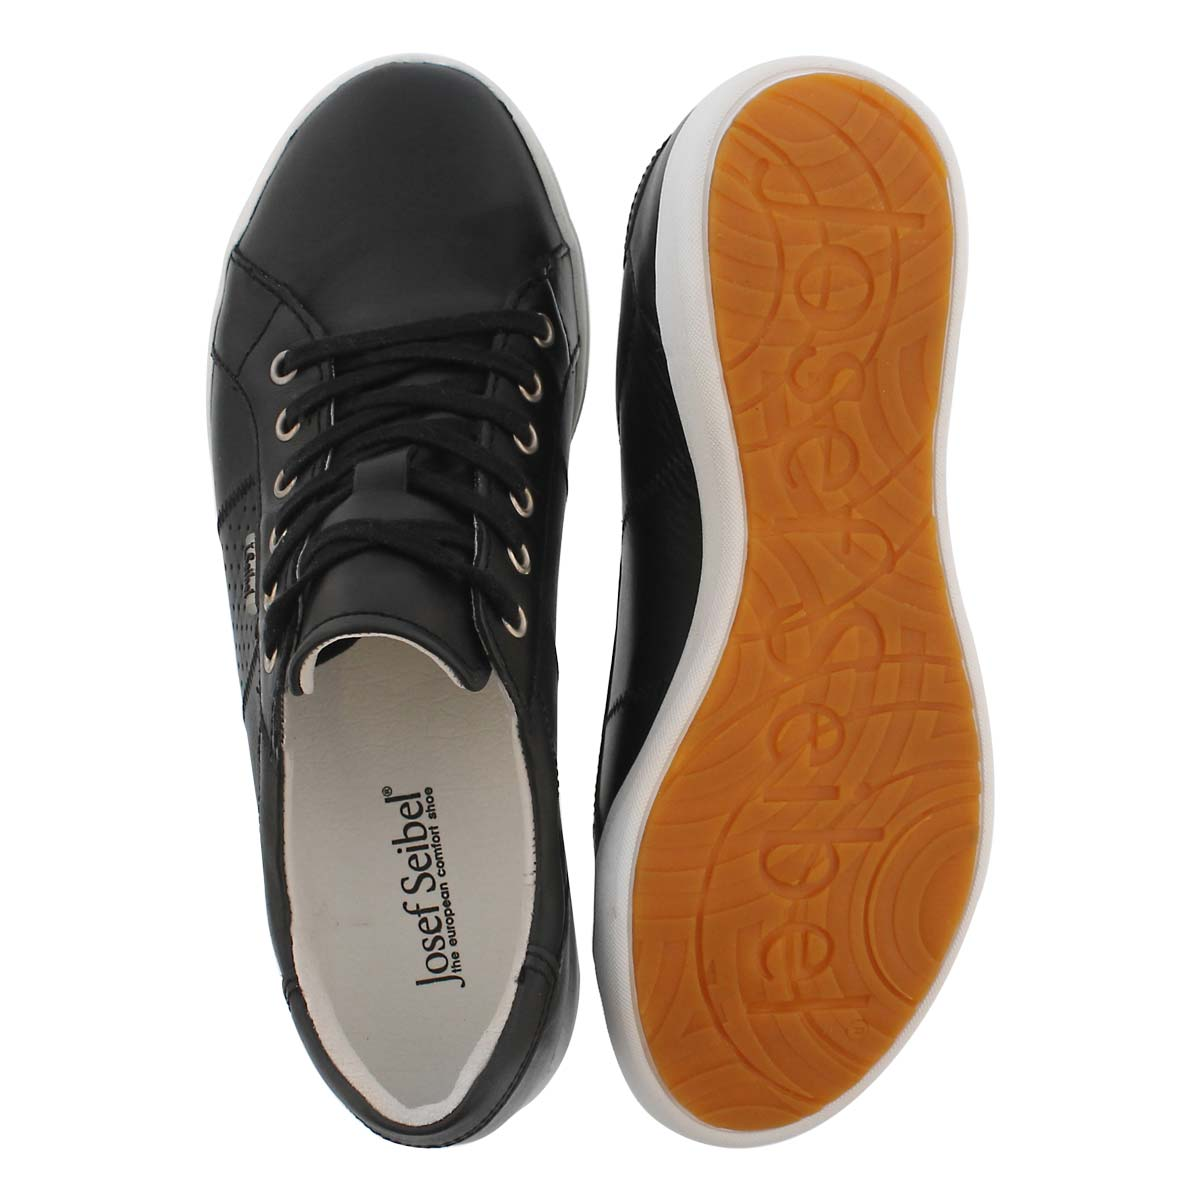 Lds Sina 41 schwarz lace up casual snkr